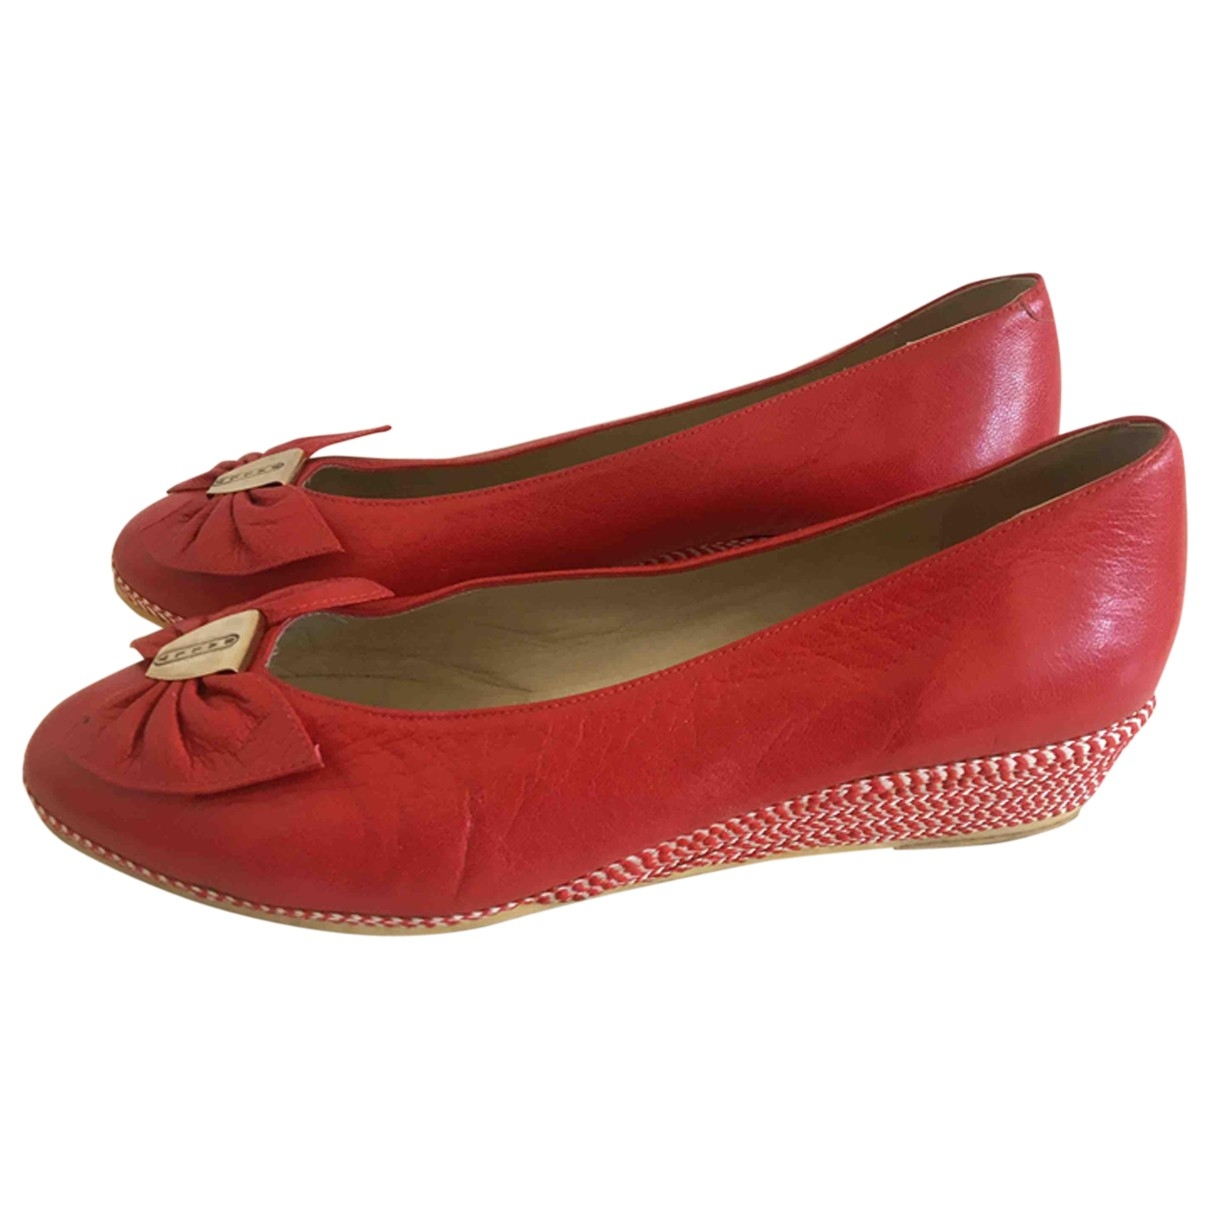 Bally \N Red Leather Heels for Women 39.5 EU